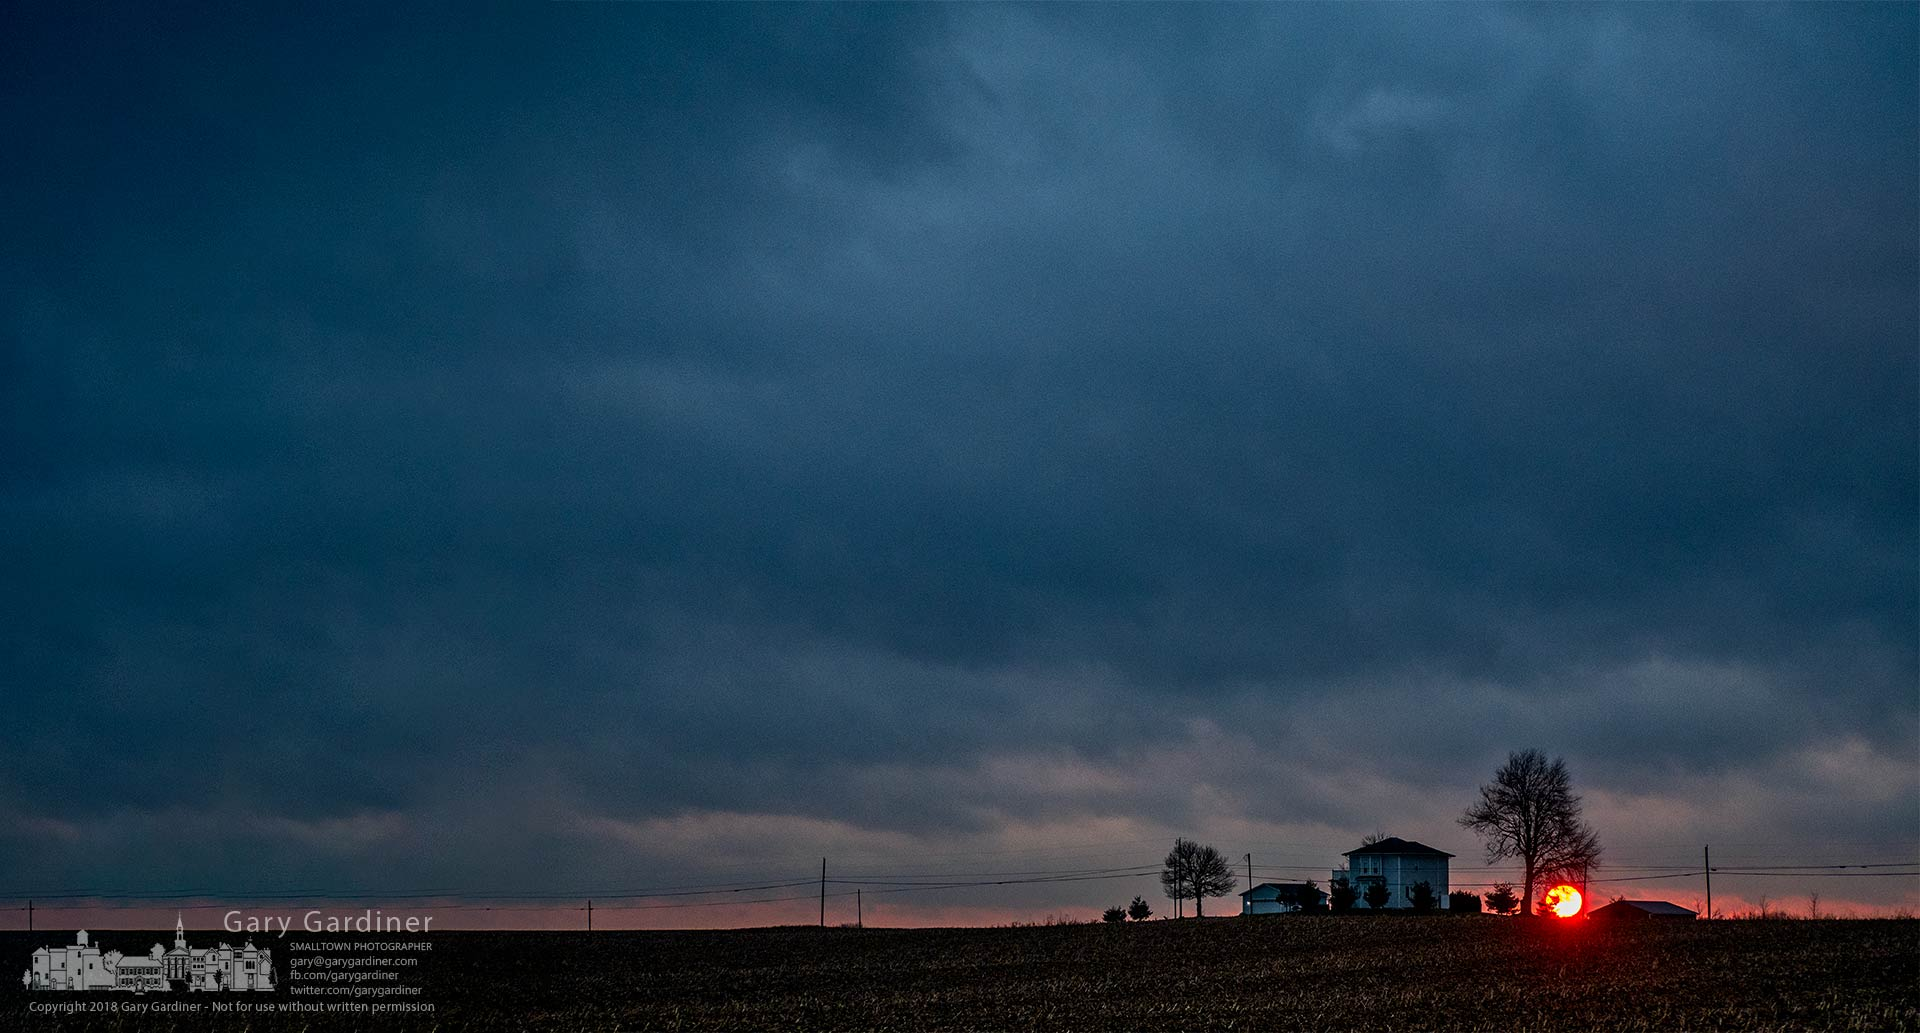 The sun breaks through a sliver of clear sky at the edge of rainy cloud cover just as it settles into the sunset behind an old farmhouse near Johnstown, Ohio. My Final Photo for Nov. 24, 2018.